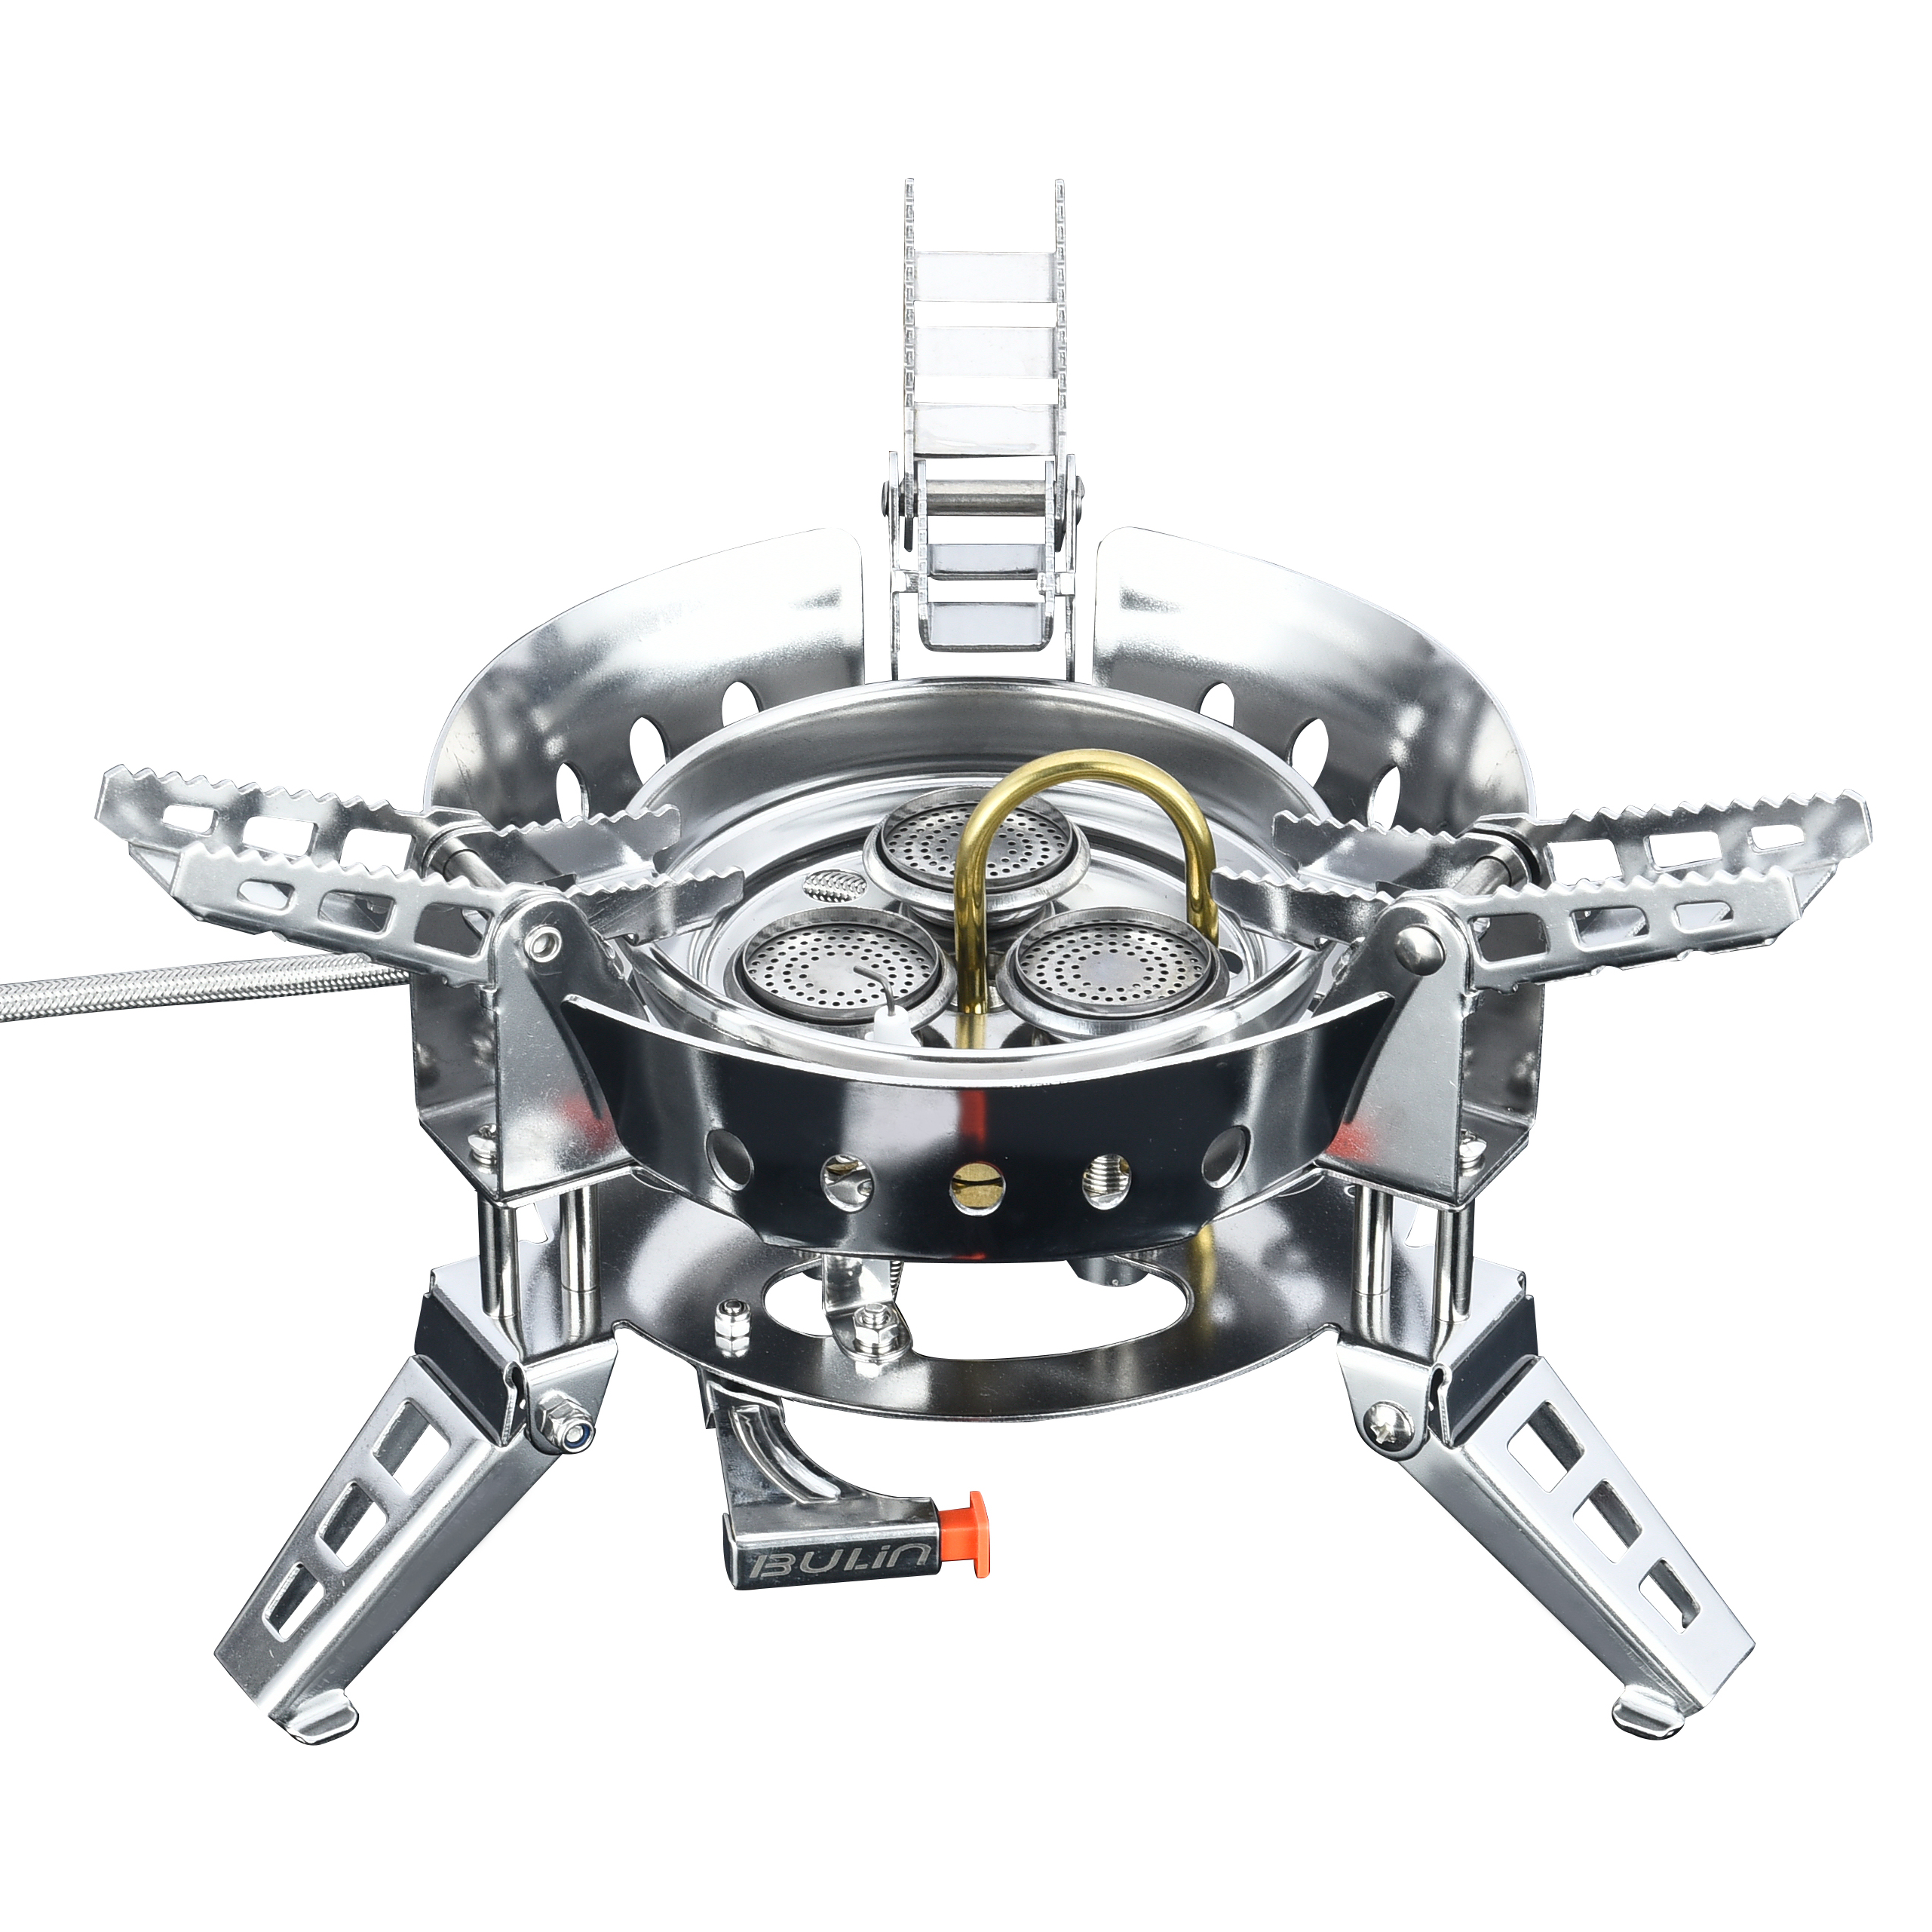 Bulin BL100-B17 campfire bornfire camp gas stove tent camping for selfdriving shelter BBQ